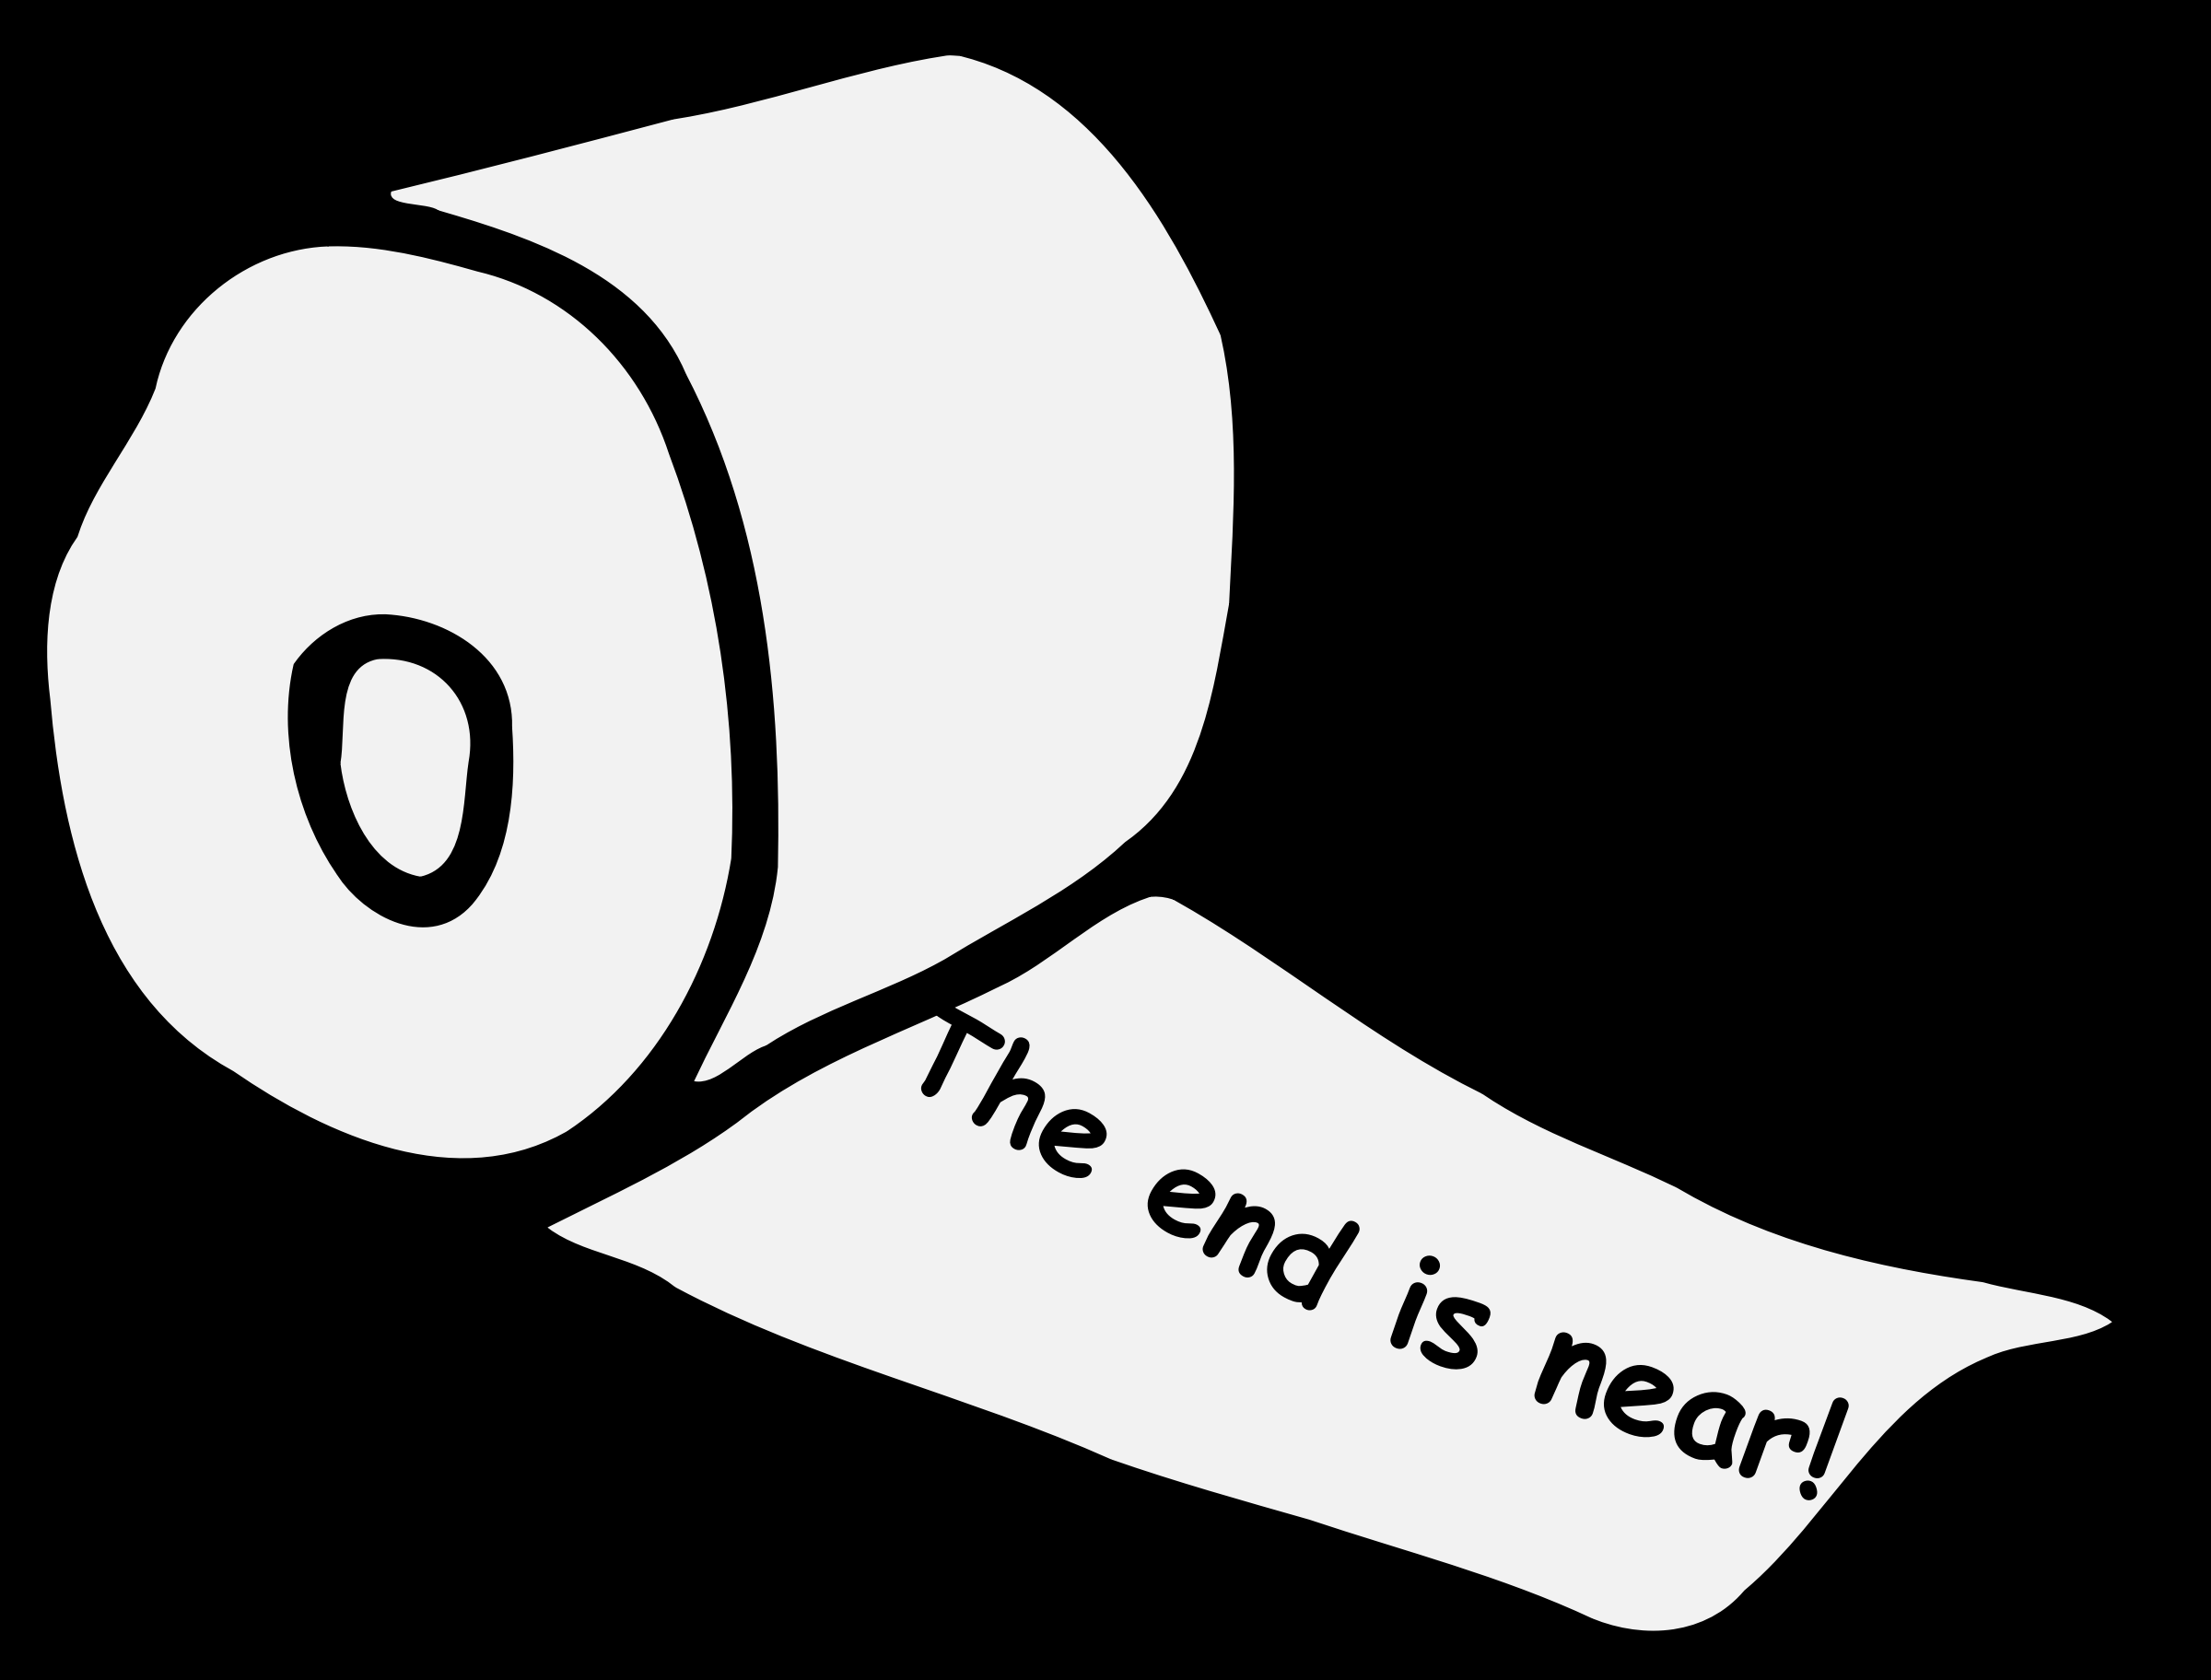 image.pnghttps://openclipart.org/image/2400px/svg_to_png/261545/Toiletpaper--The-End-Is-Near.png